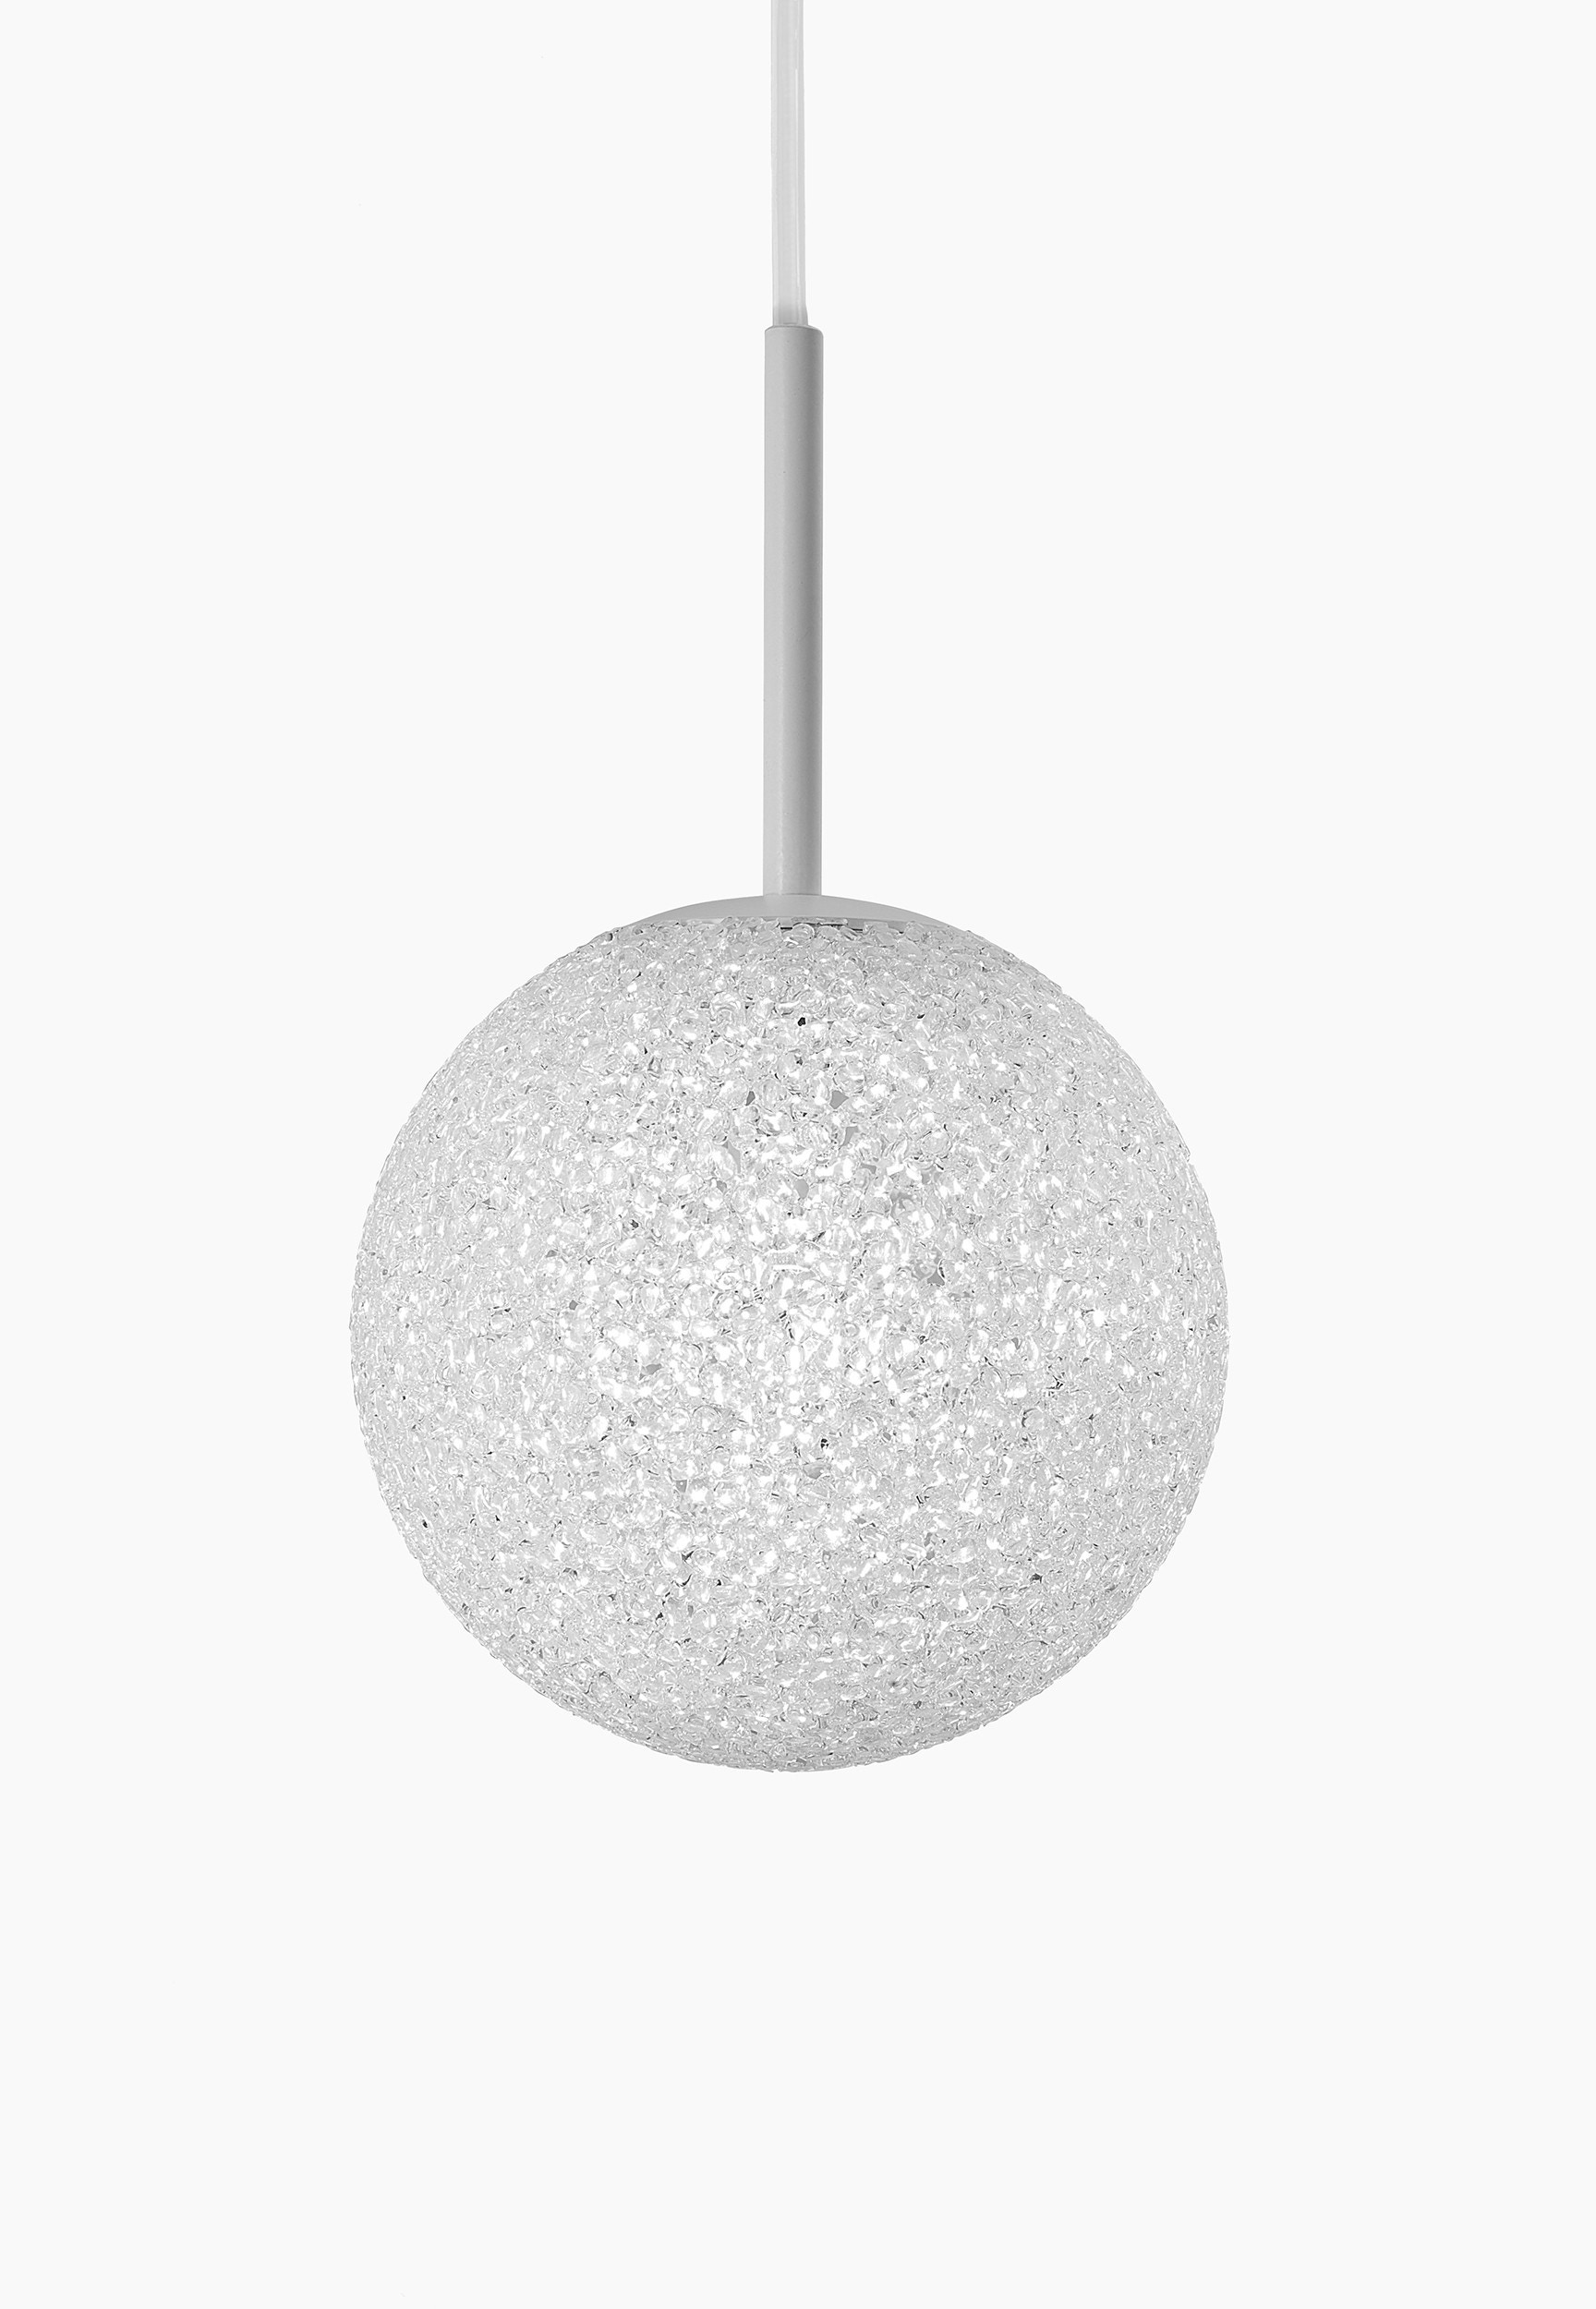 Lumen Center Italia Iceglobe Micro Suspension Lamp